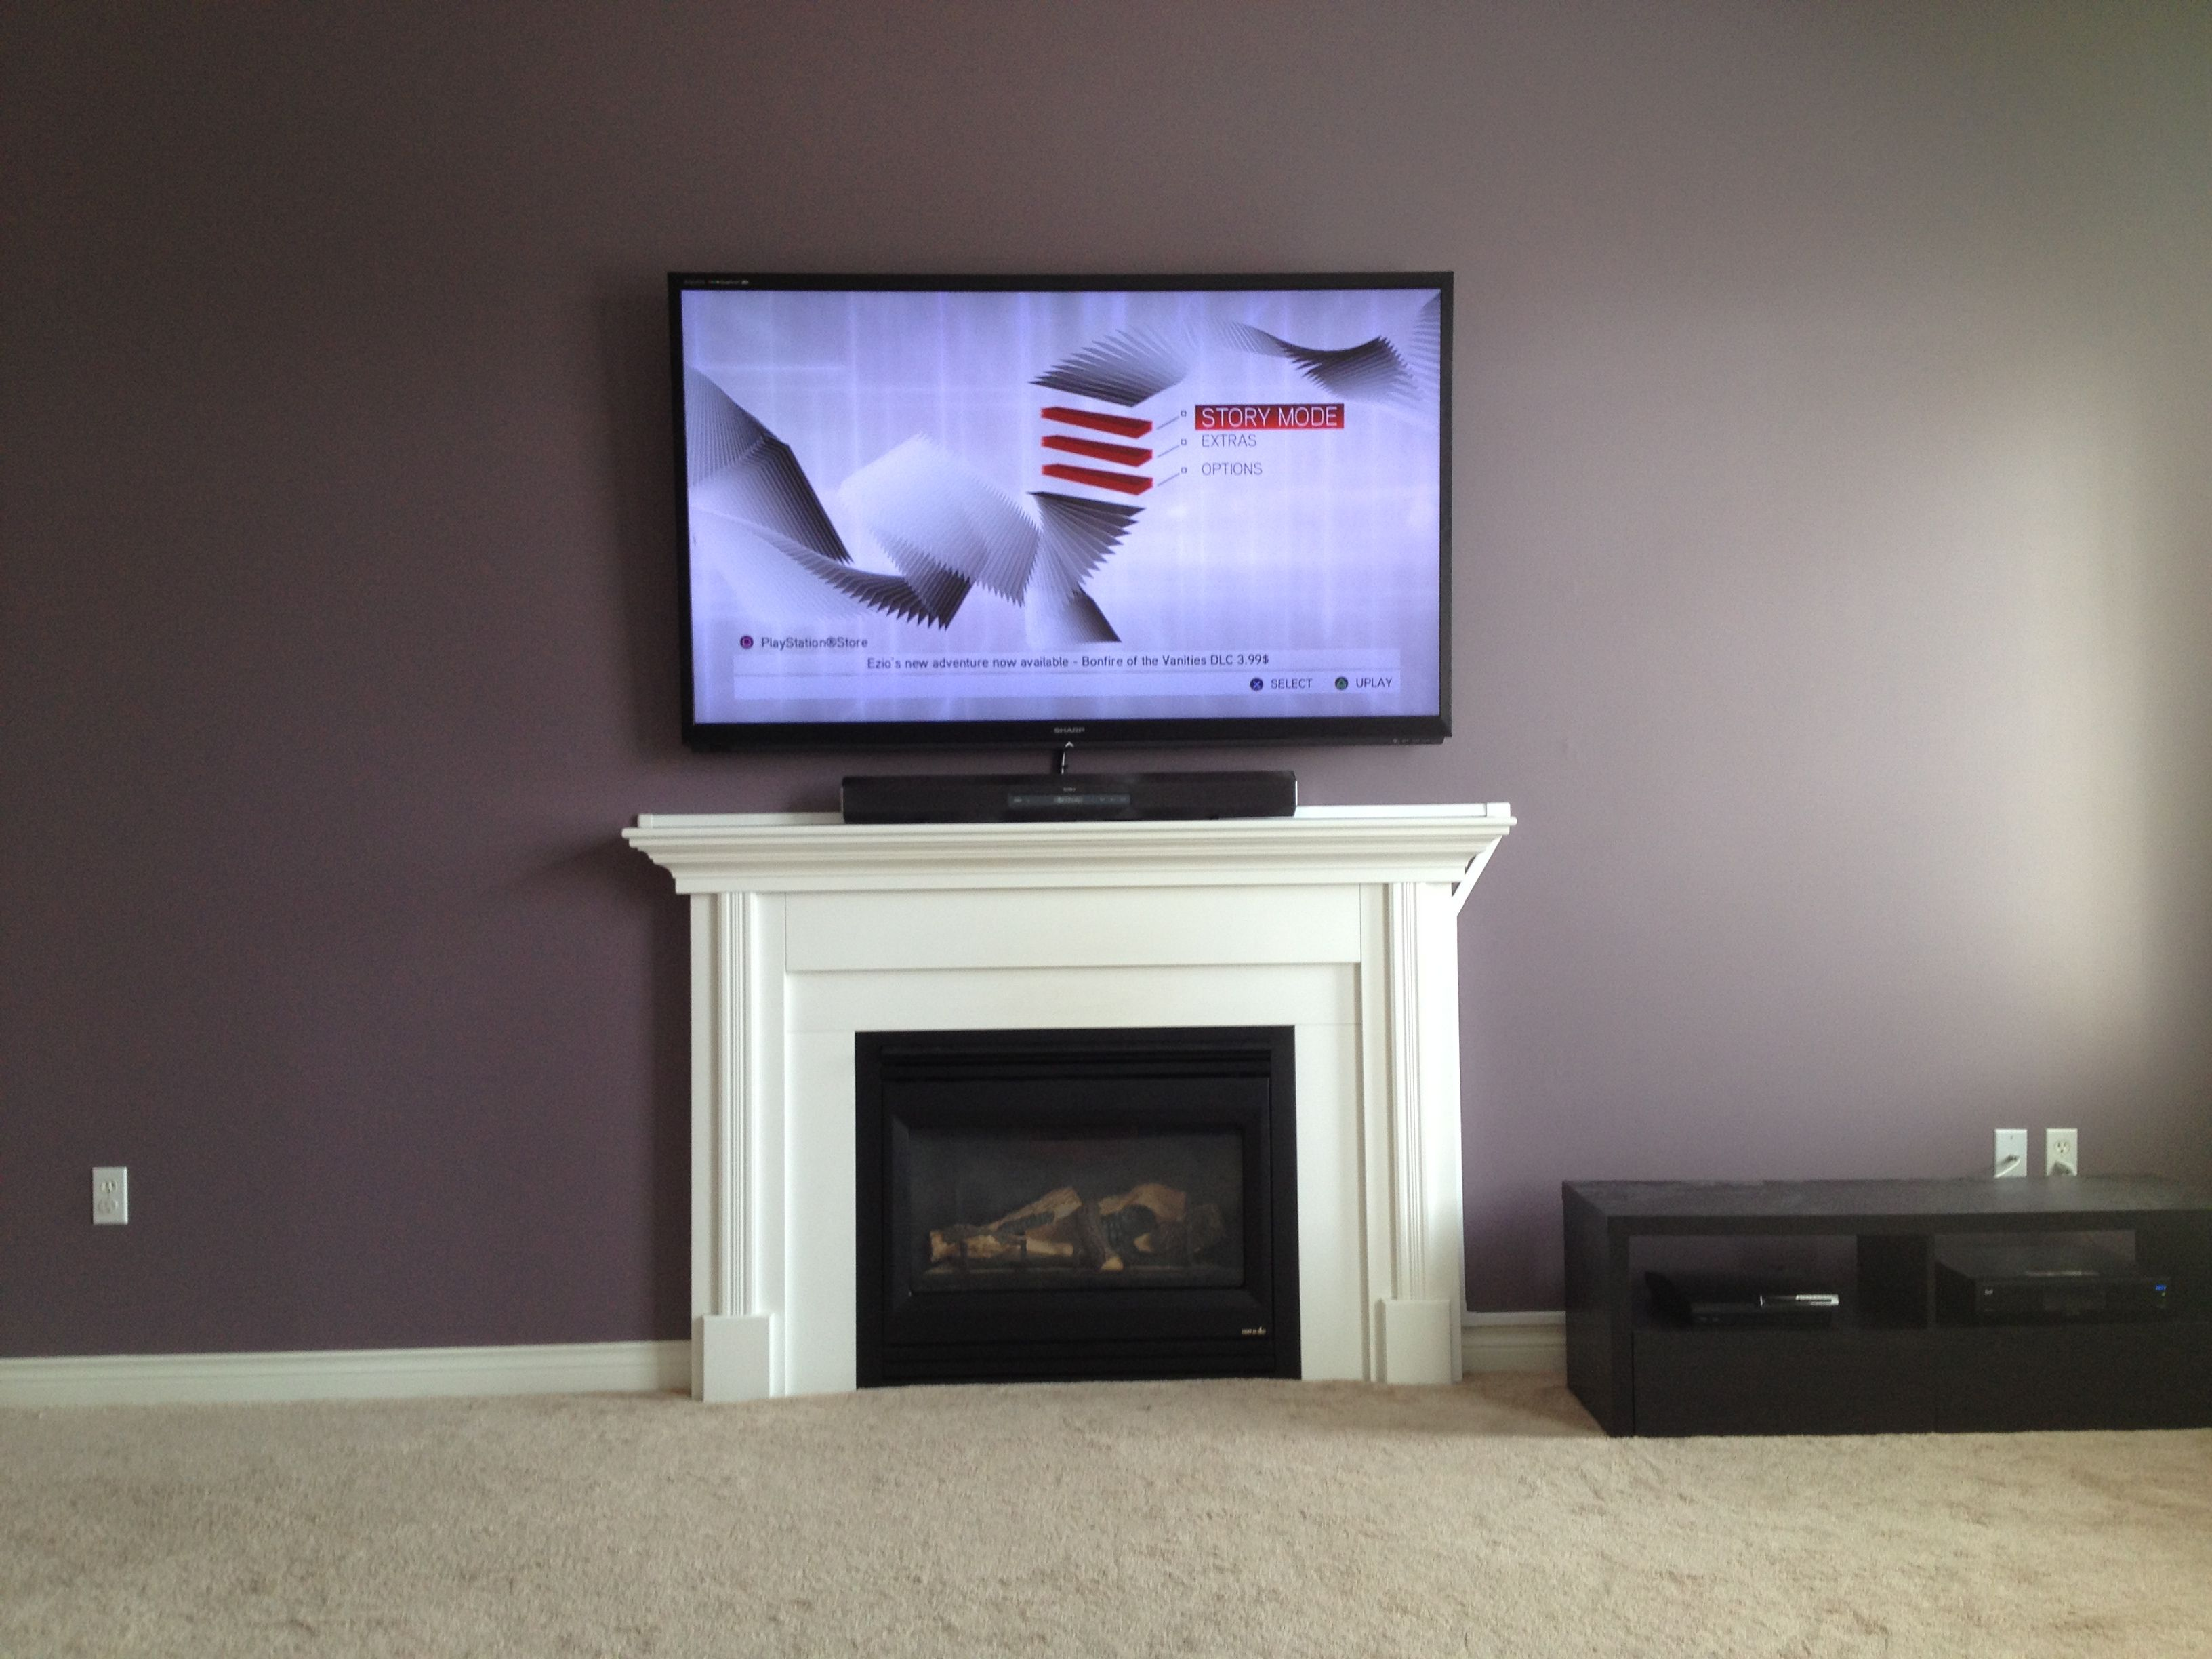 led tv wall mounted flush to the surface of the custom designed